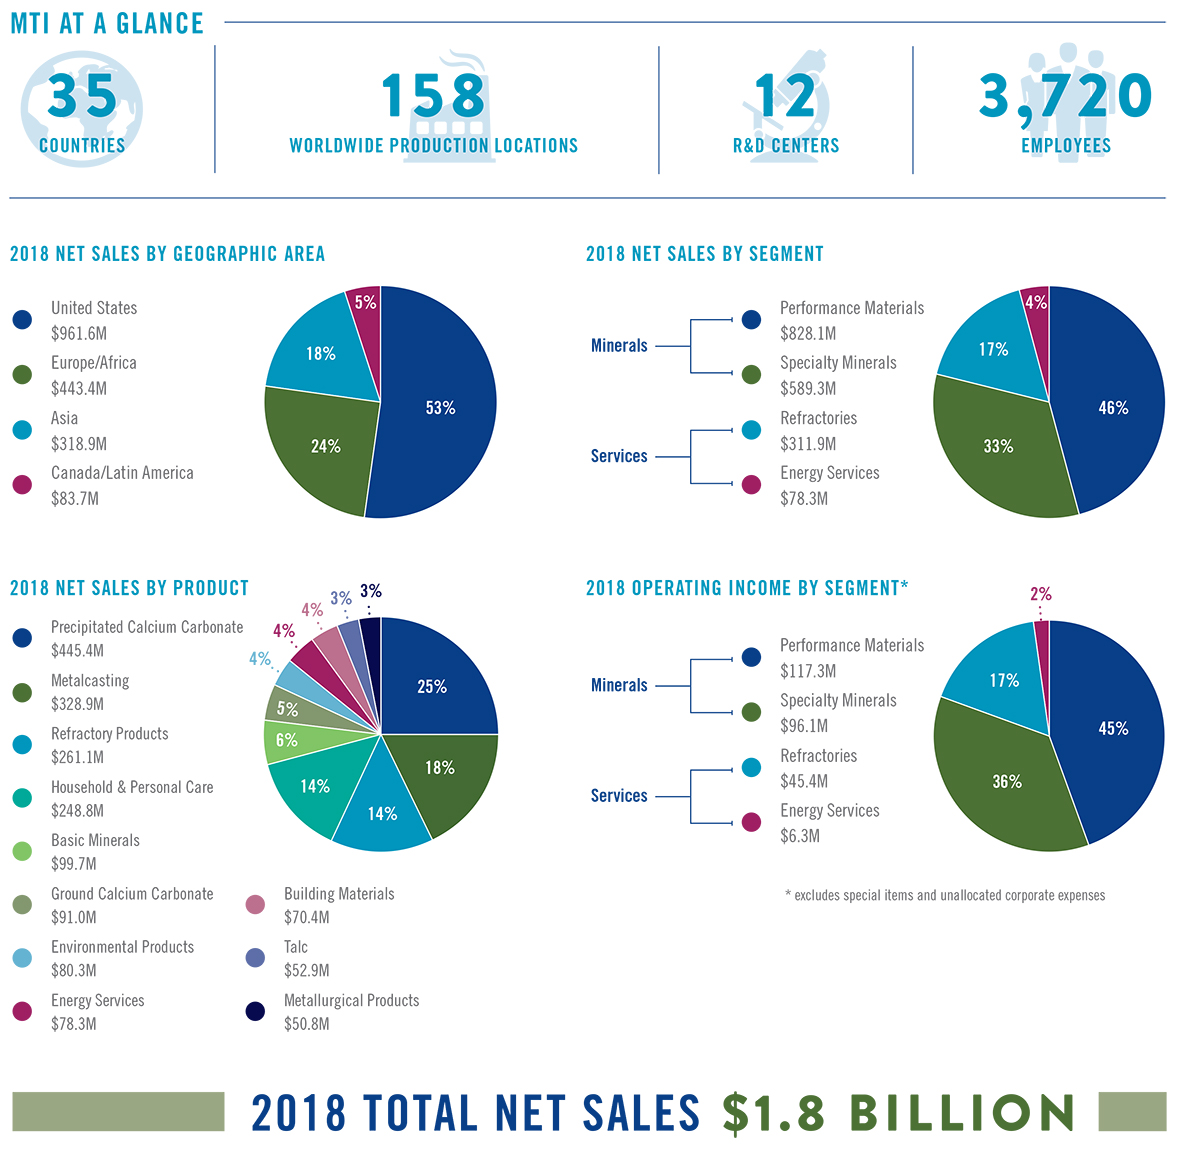 MTI At a Glance